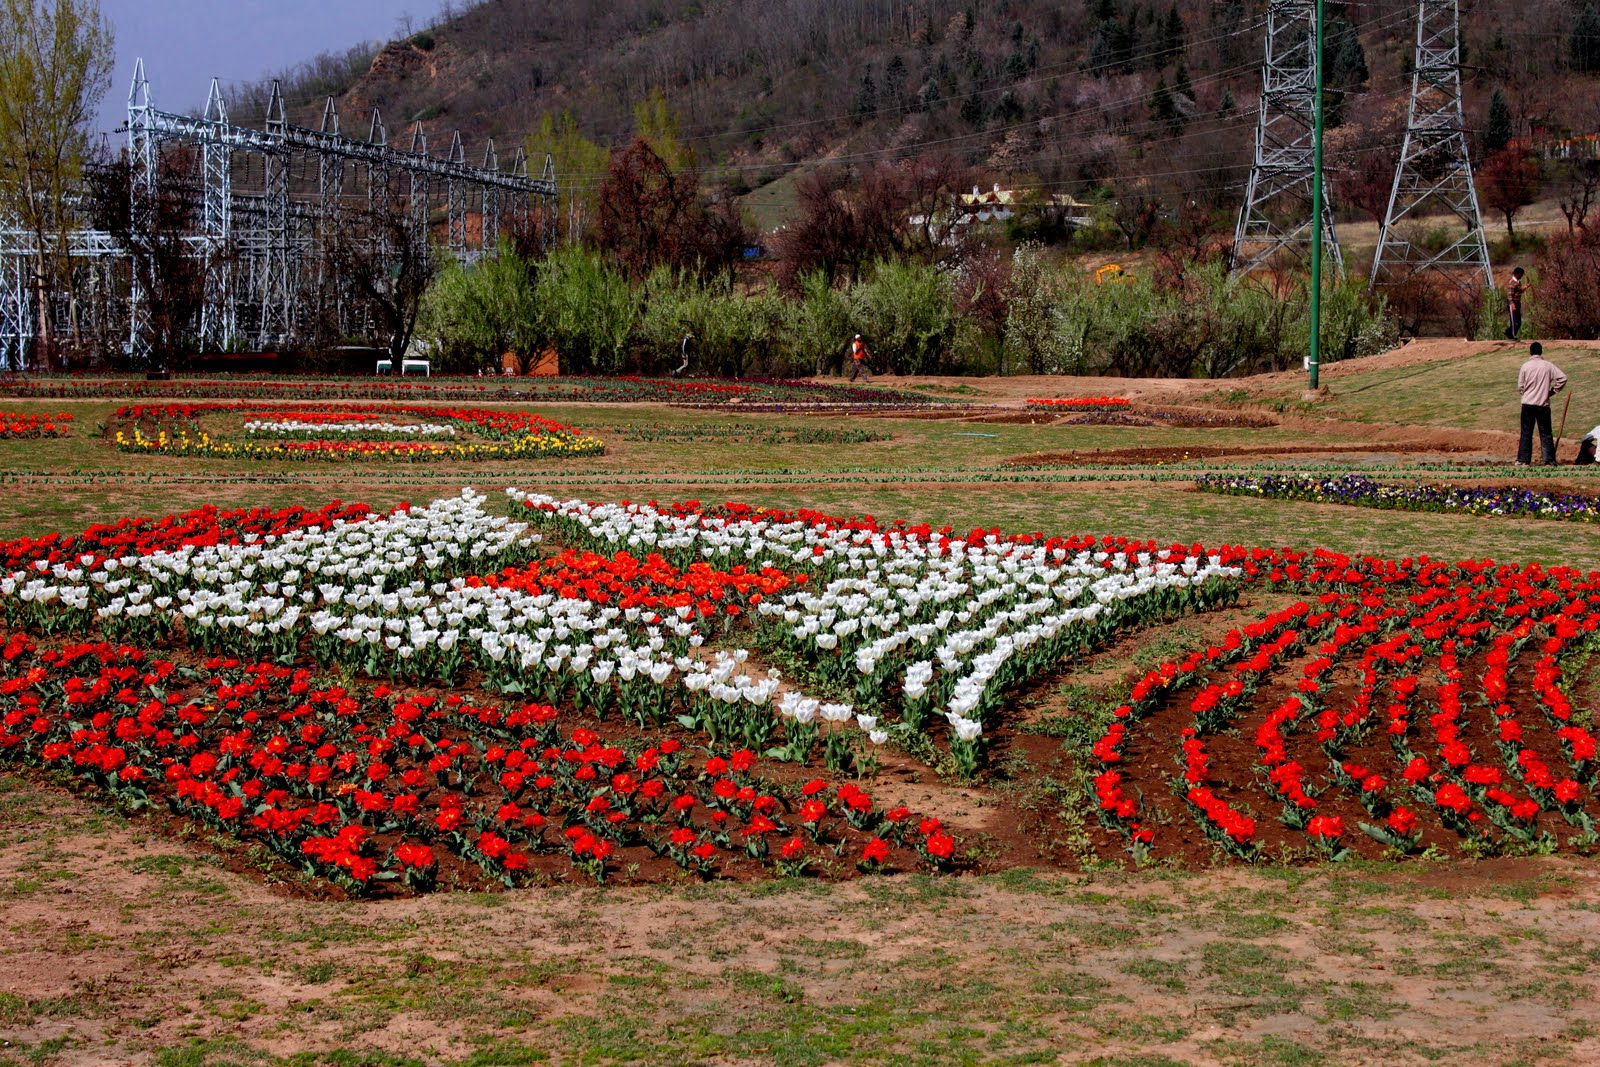 Kashmir natures own ad shahid mehraj rather the designing in the designing of the flower beds initiated this year in the tulip garden of jammu and kashmir has actually not added to the beauty of the garden izmirmasajfo